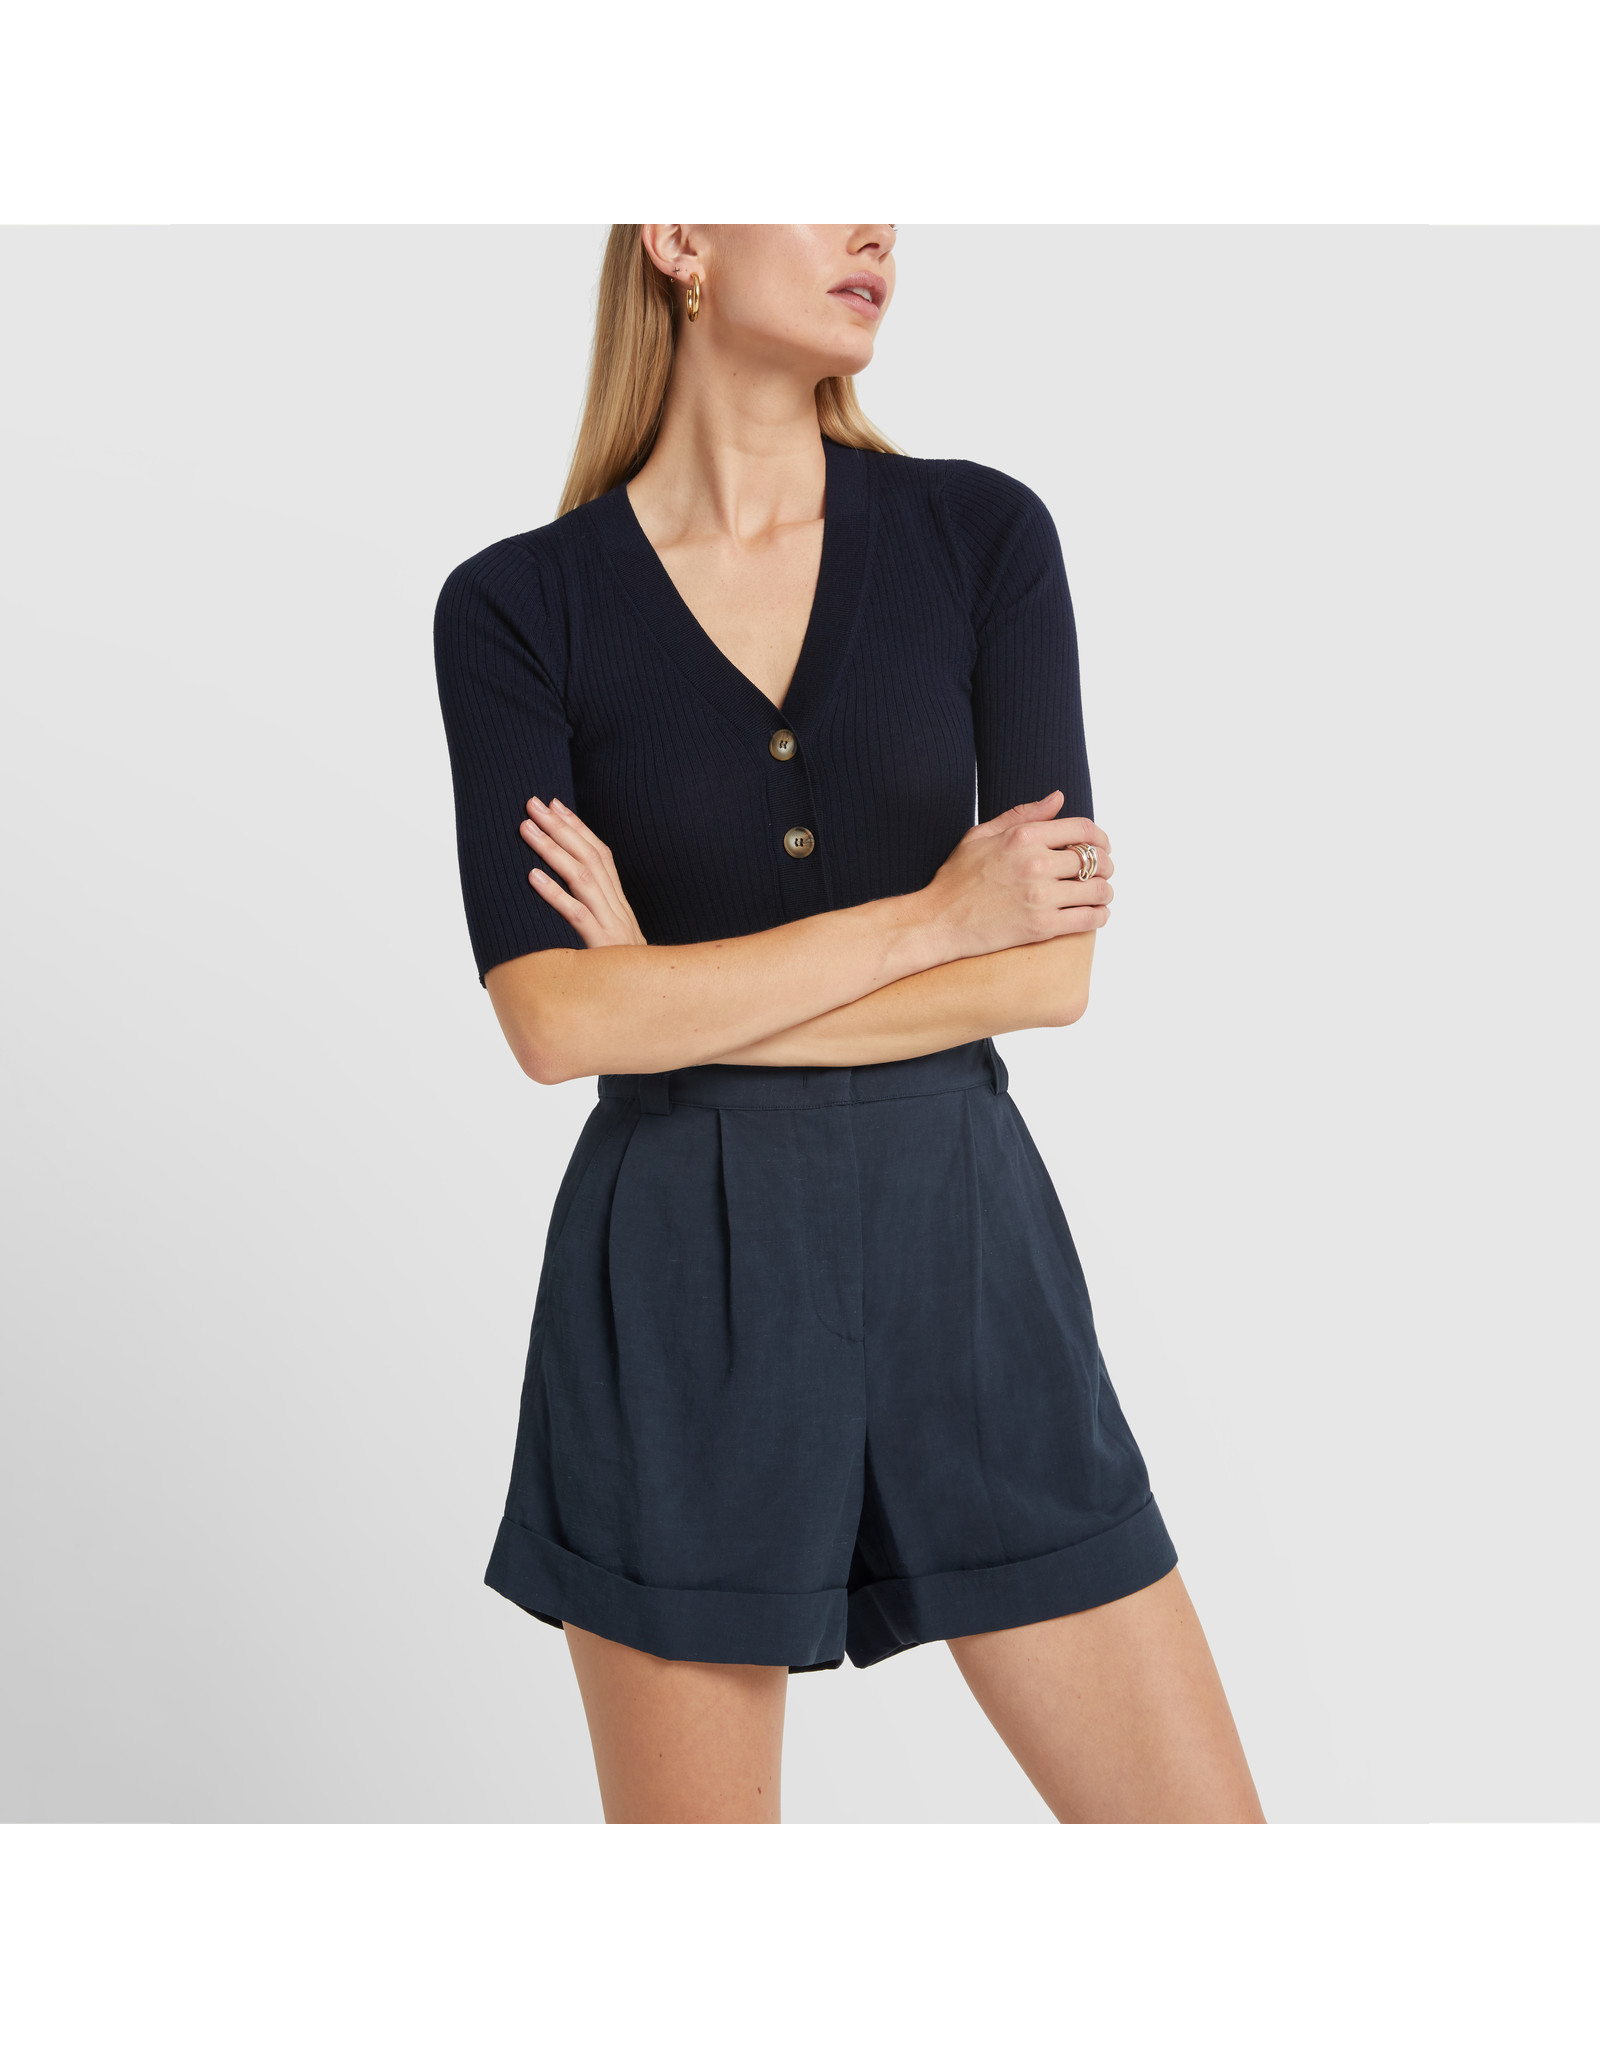 G. Label G. Label Marty High Waist Short (Color: Navy, Size: 6)